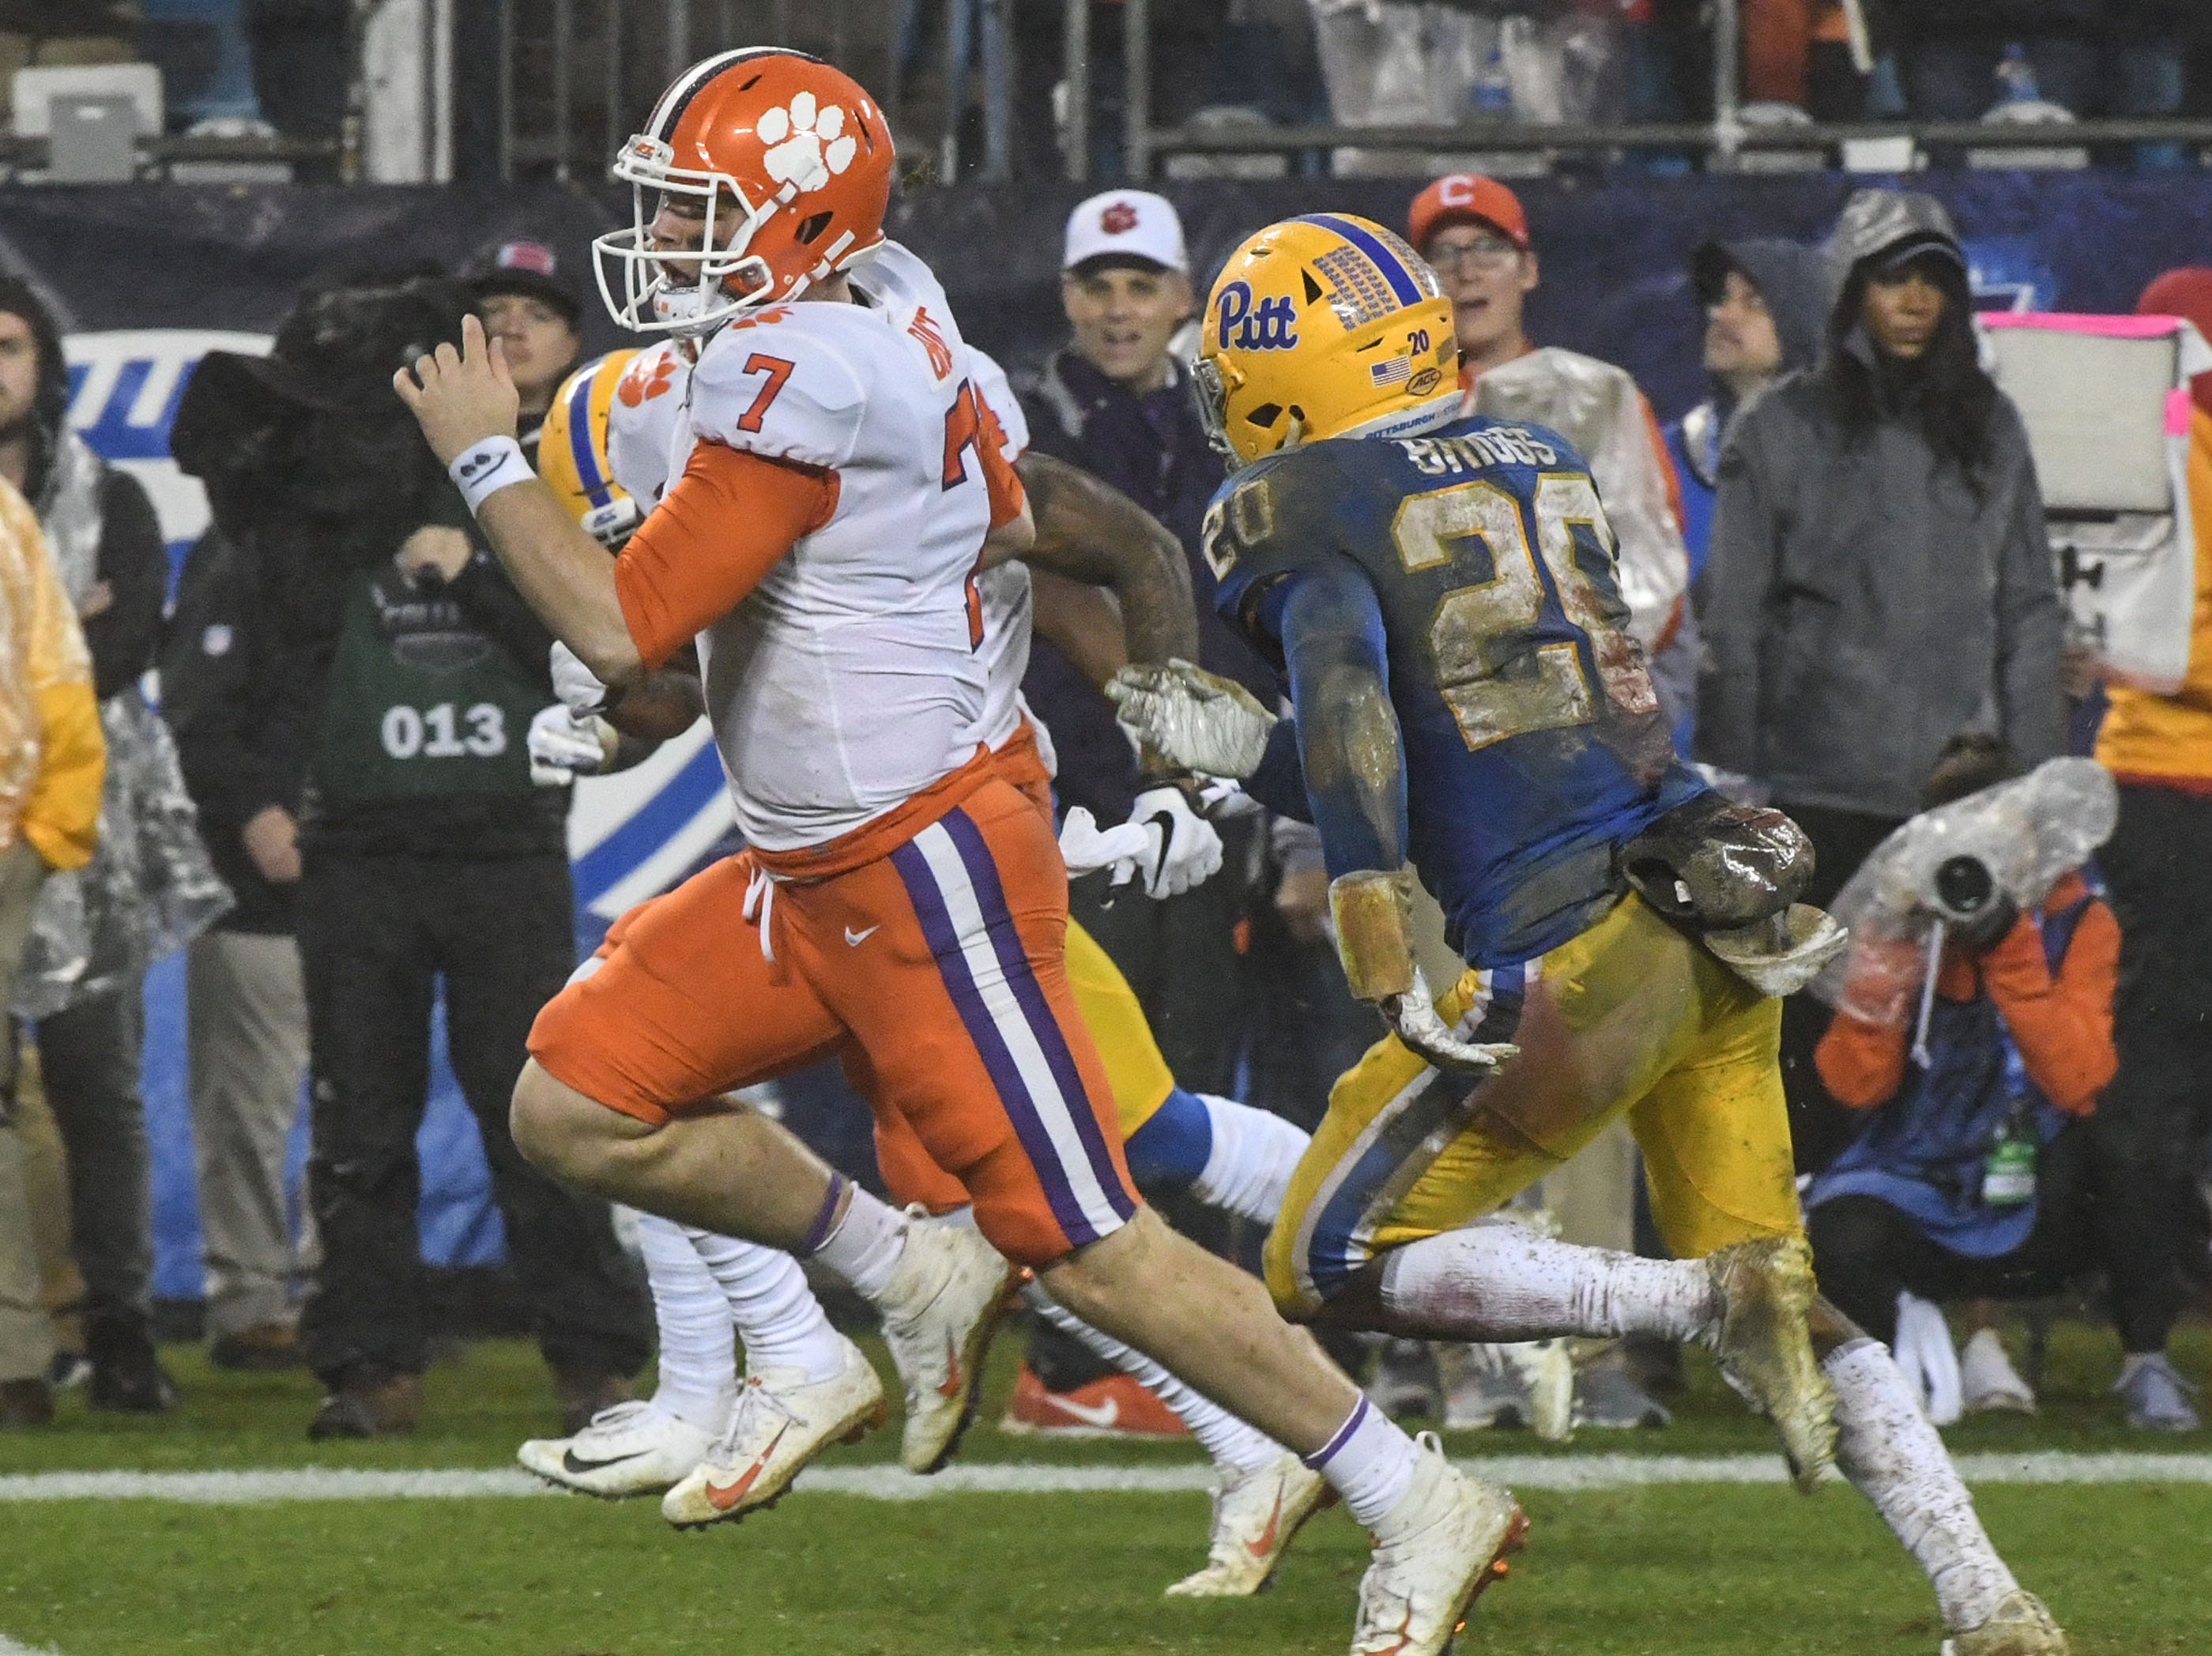 Clemson quarterback Chase Brice (7) runs by Pittsburgh Dennis Briggs during the fourth quarter in Memorial Stadium on Saturday, November 3, 2018.